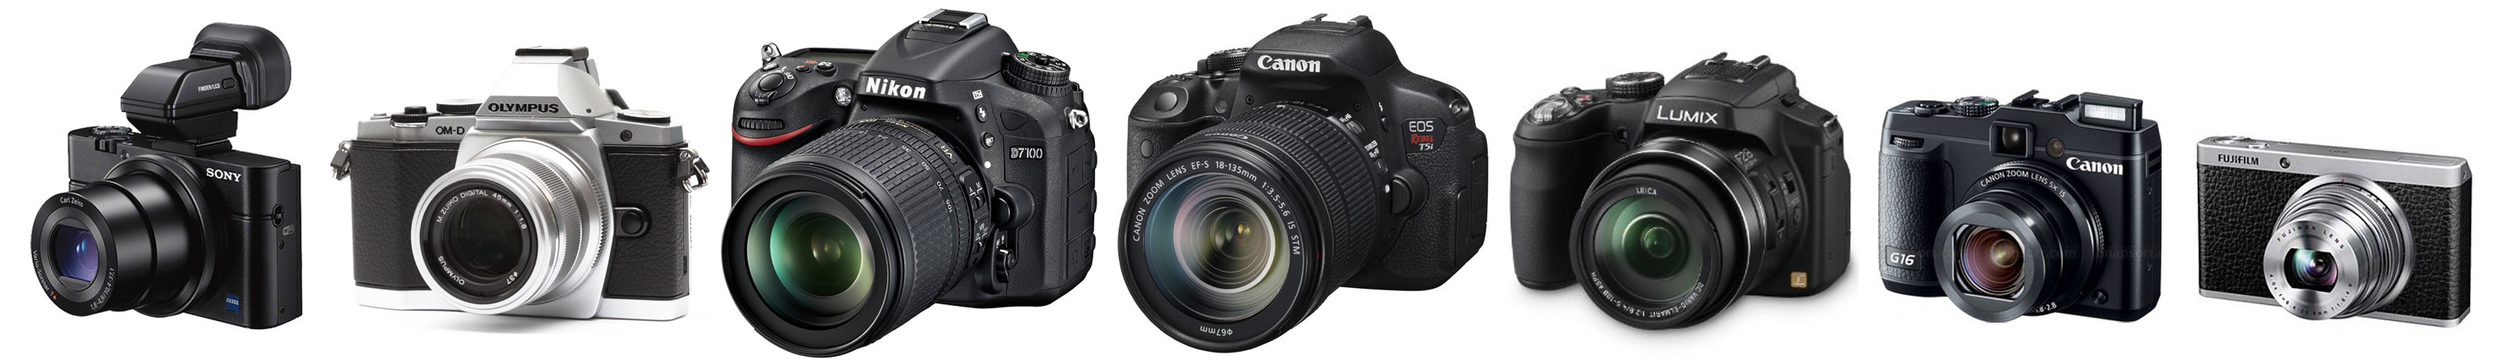 We sell digital cameras at the lowest prices;call for a low price quote on any camera